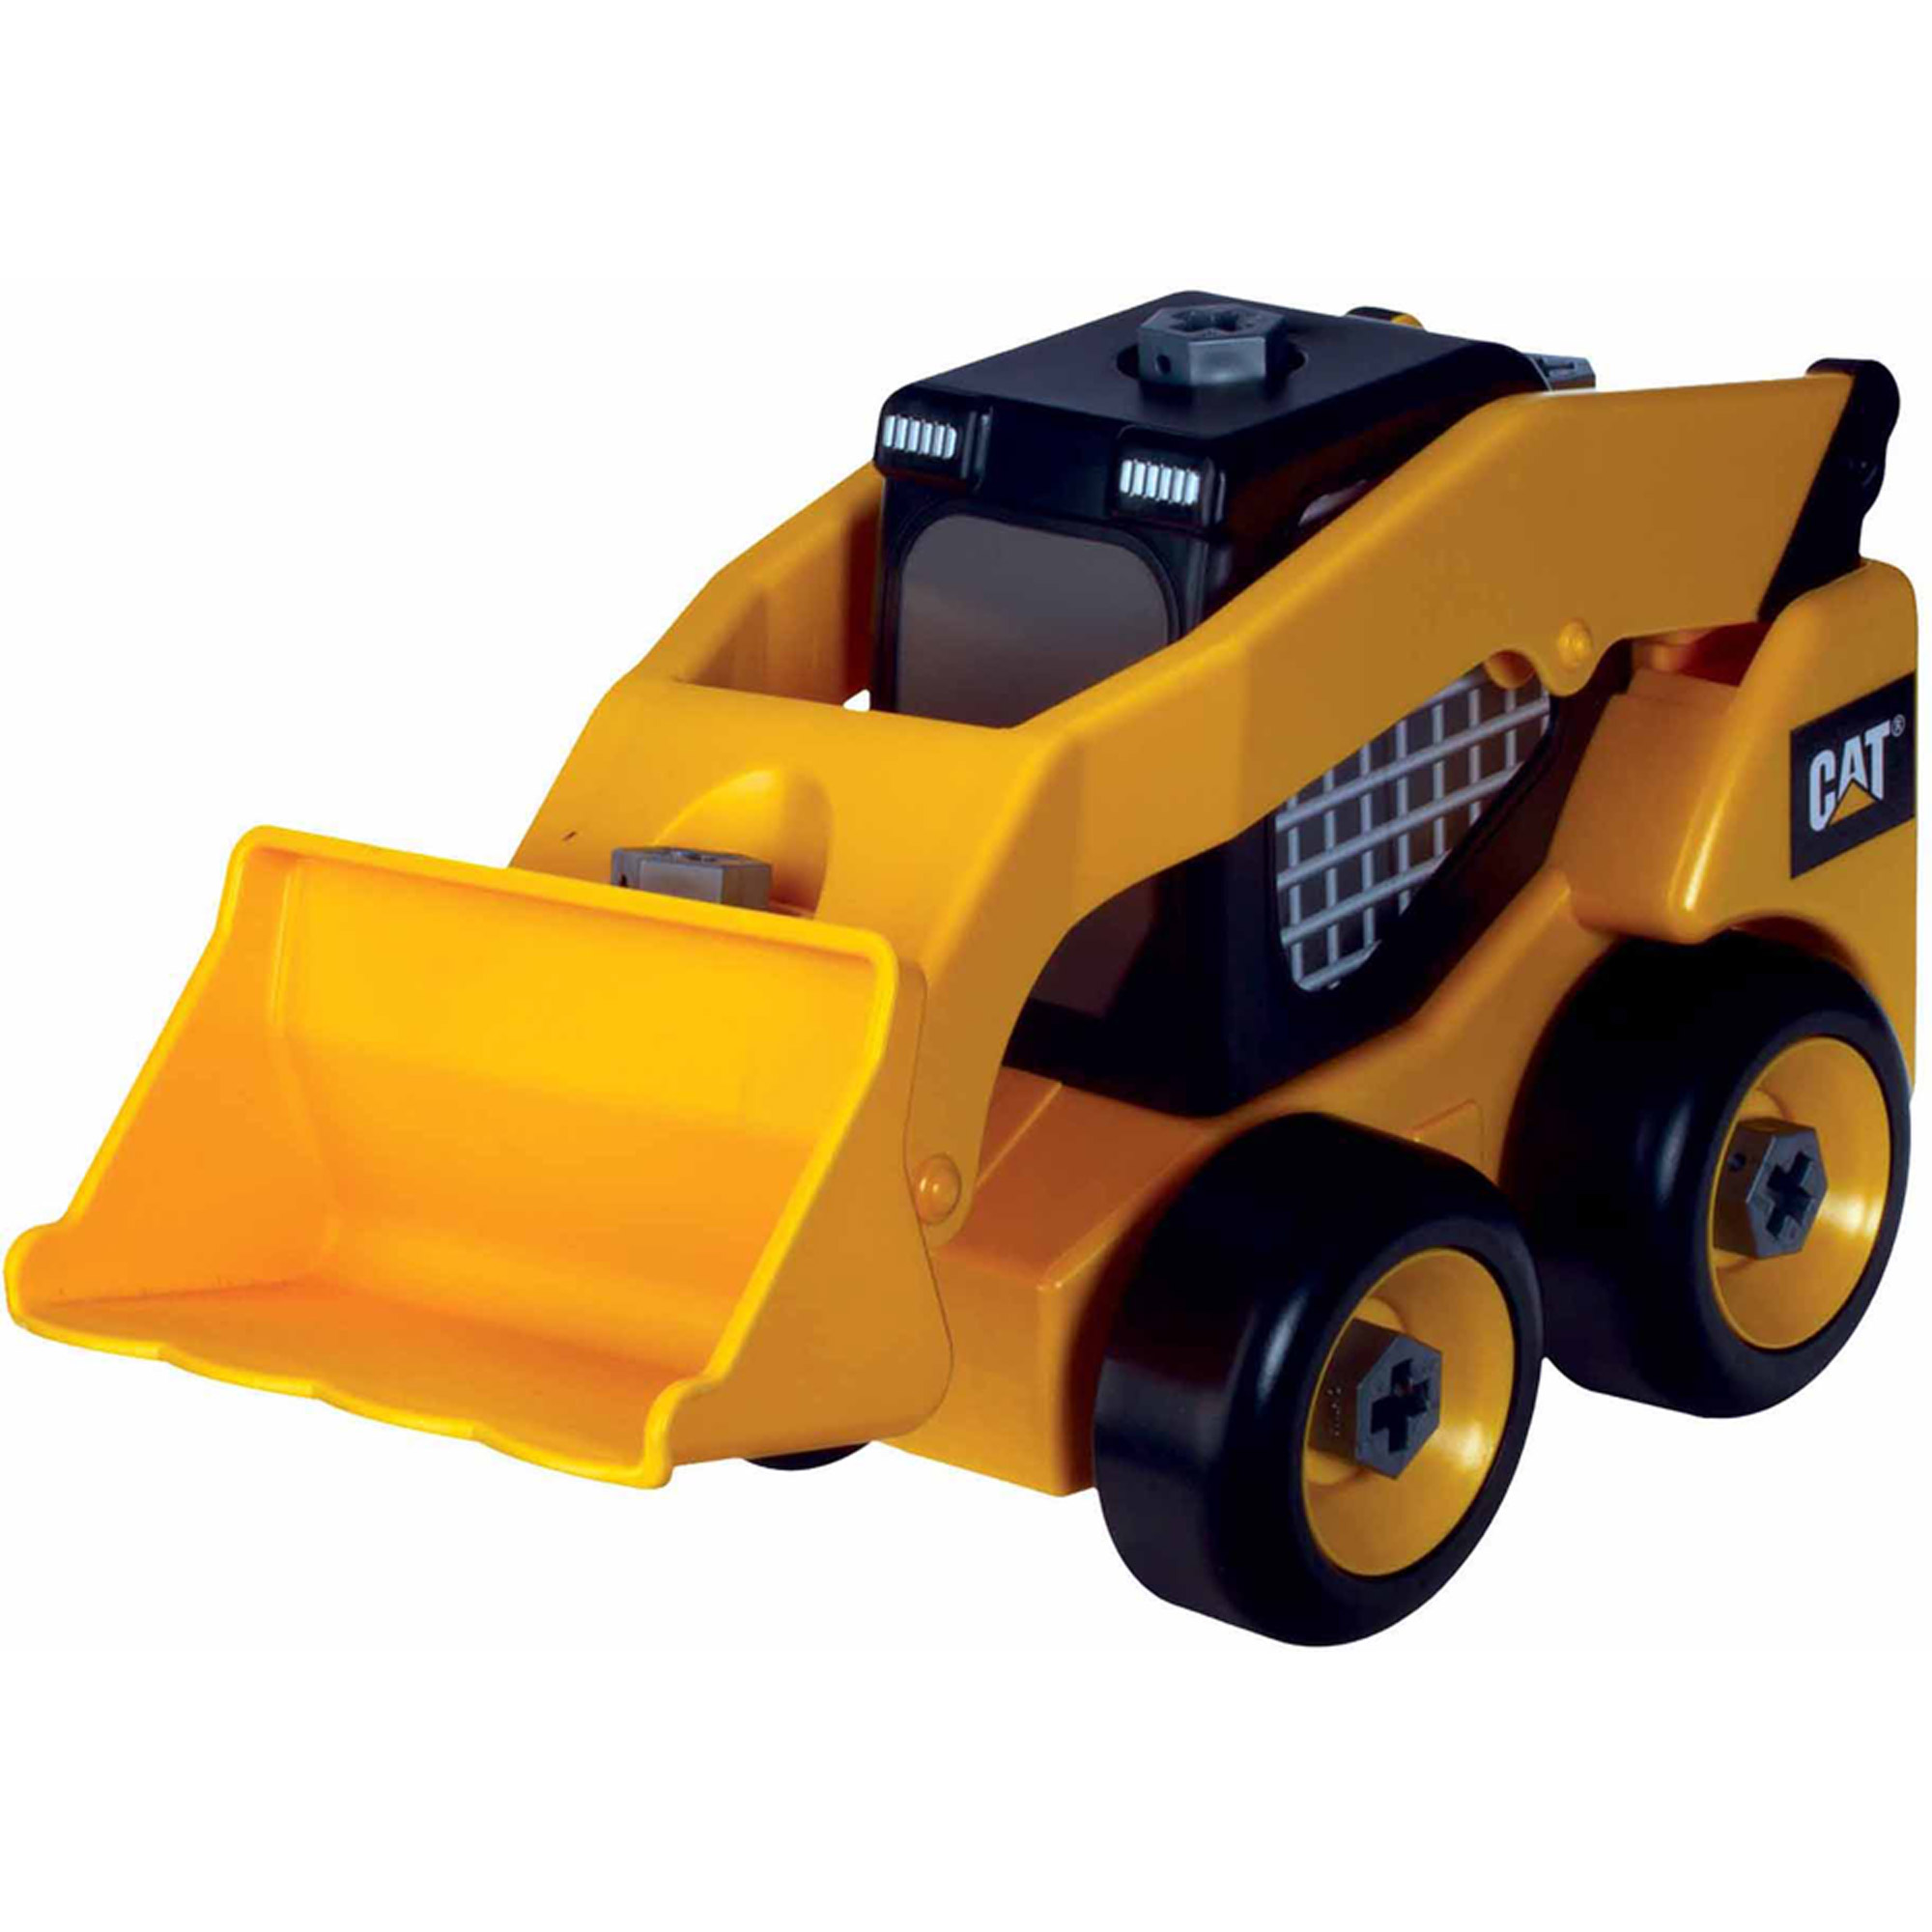 Toysmith Caterpillar Take A Part Skid Steer, Cat